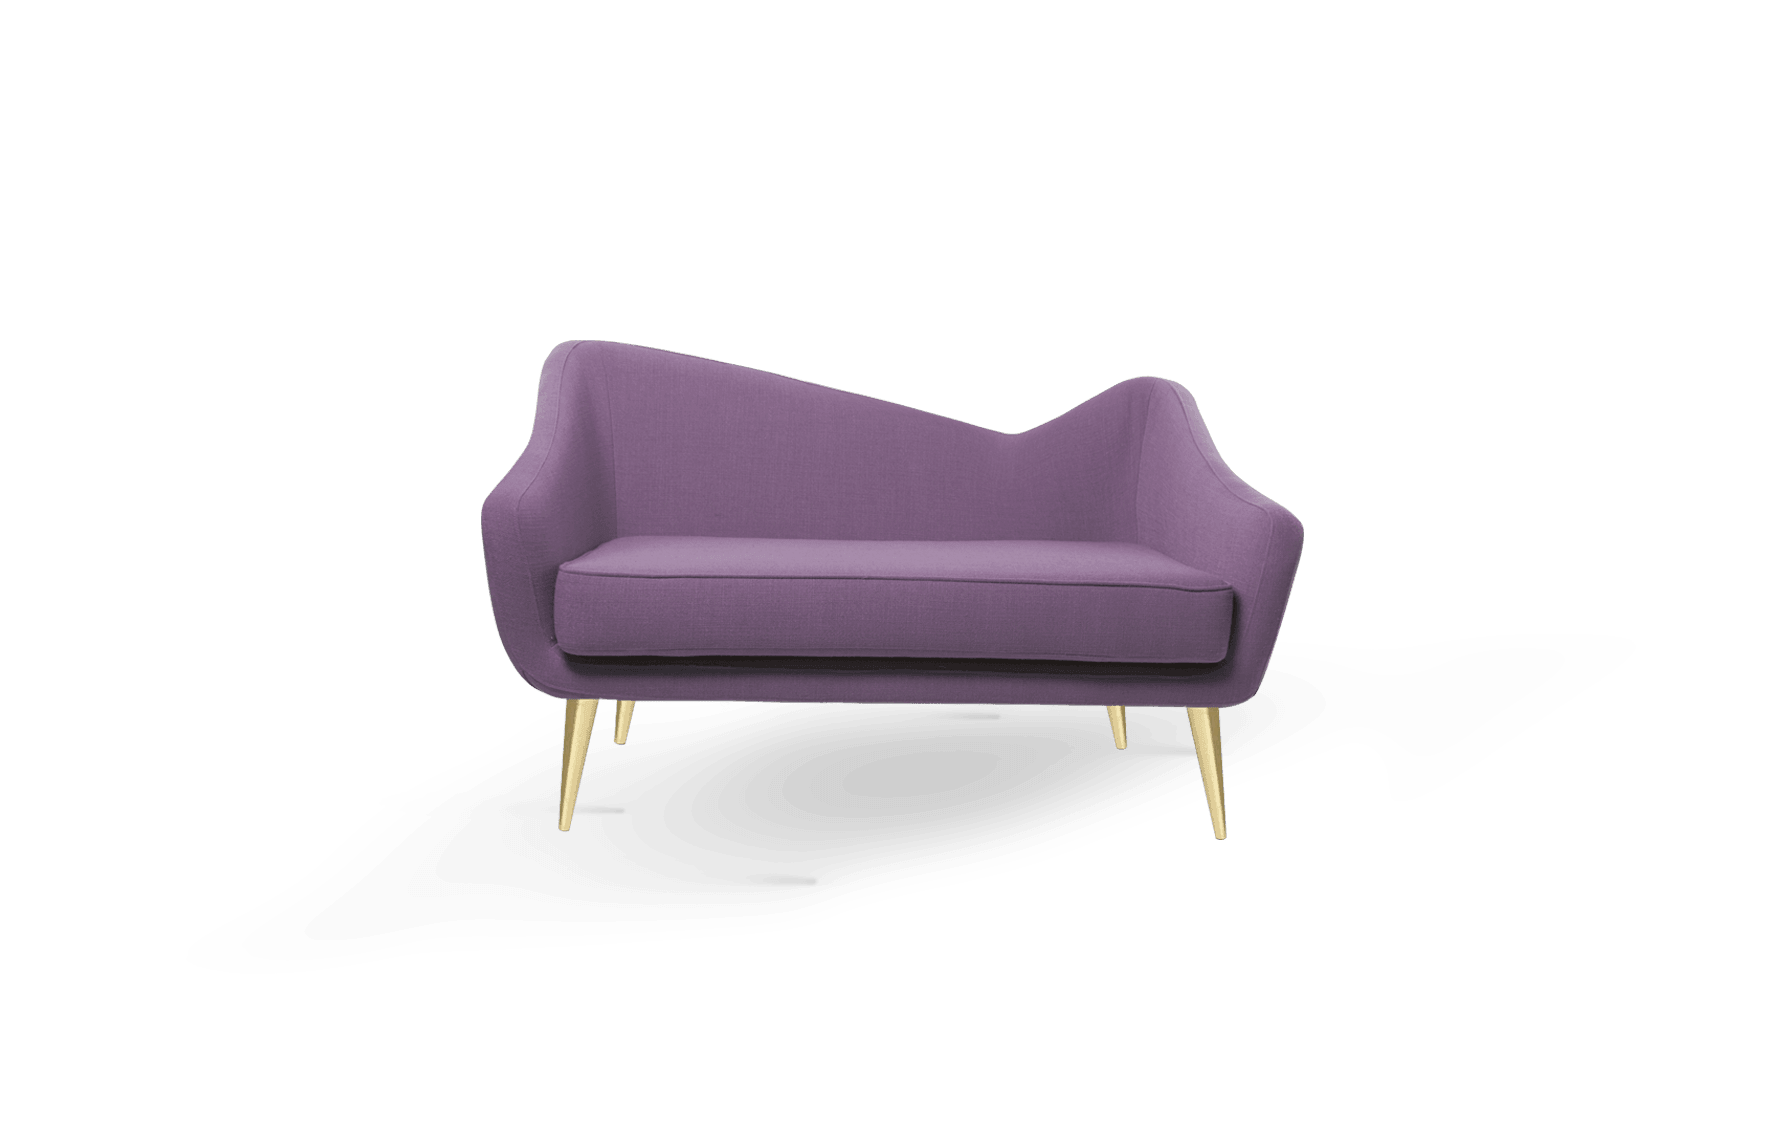 Hayworth Mid-Century Modern Twin Seat in purple cotton velver